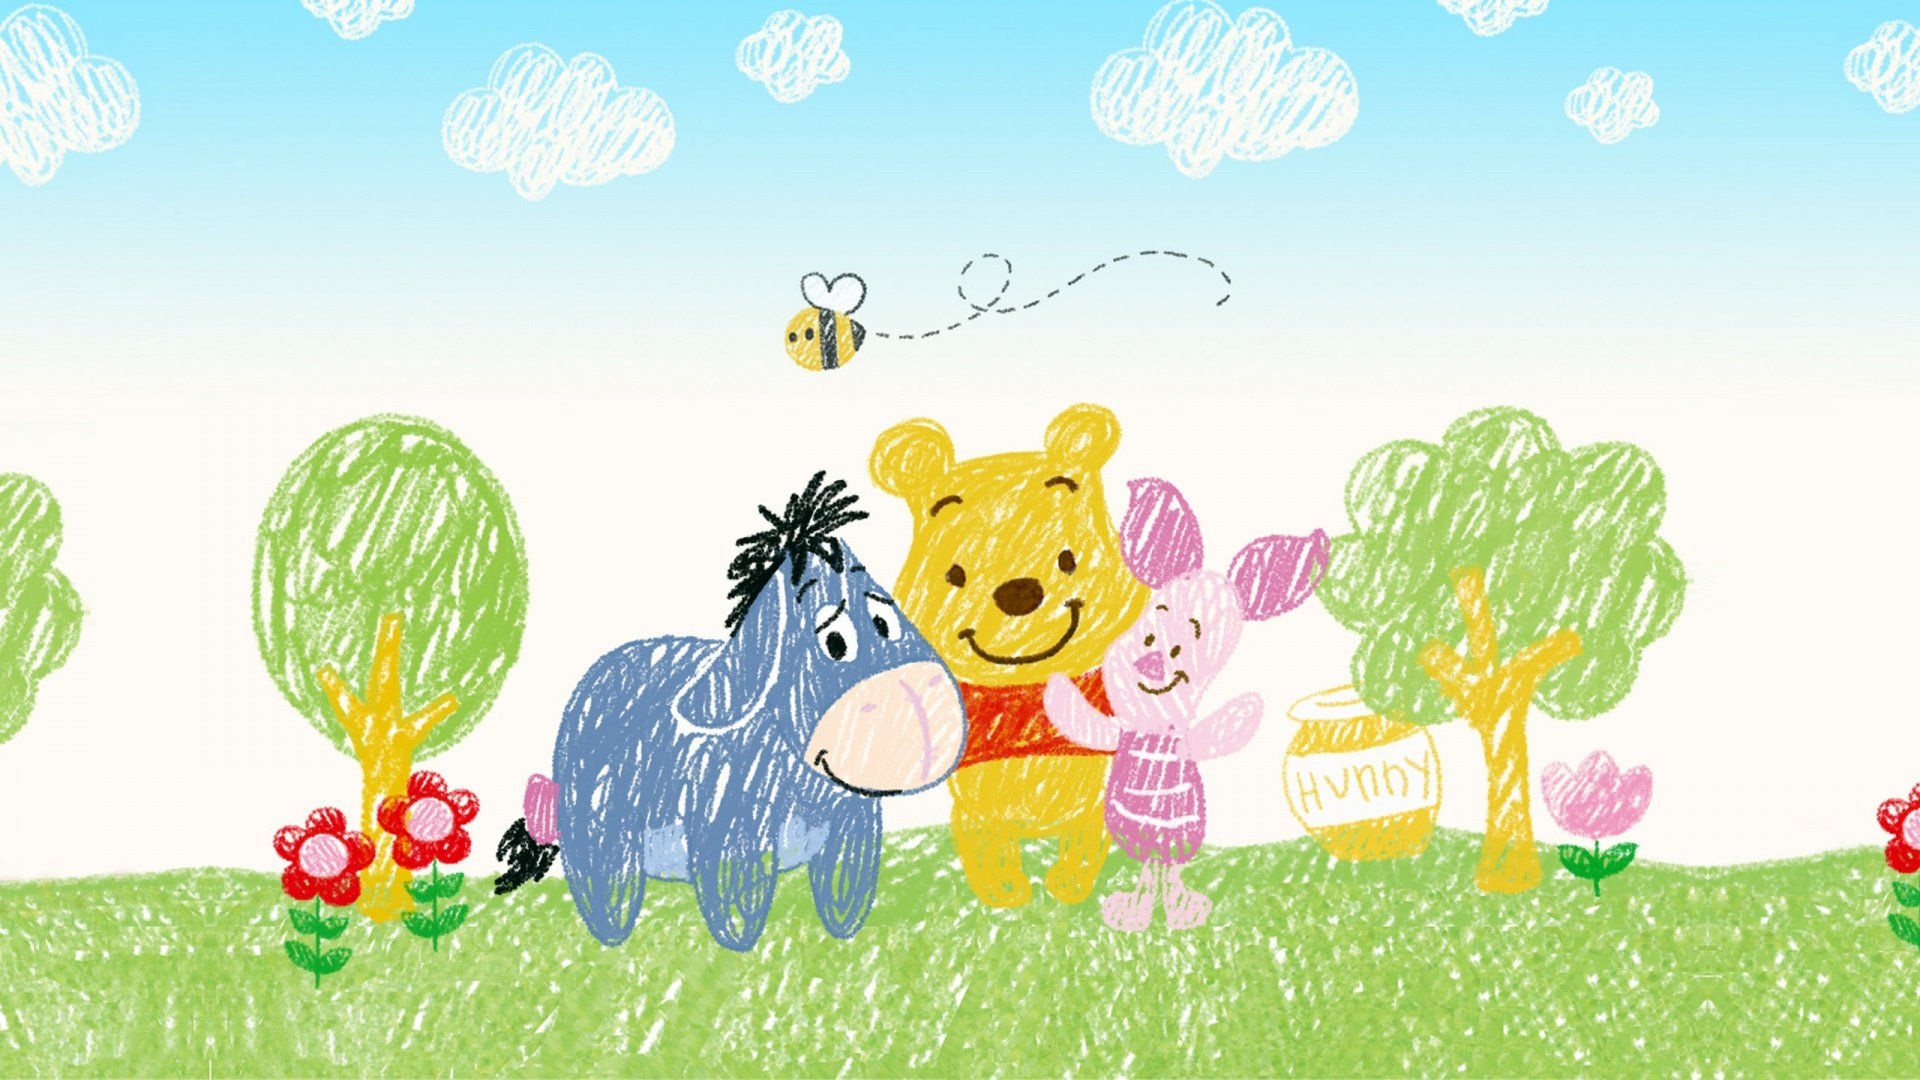 Winnie the pooh wallpaper hd 10 winnie the pooh wallpaper hd10 600x338 voltagebd Image collections